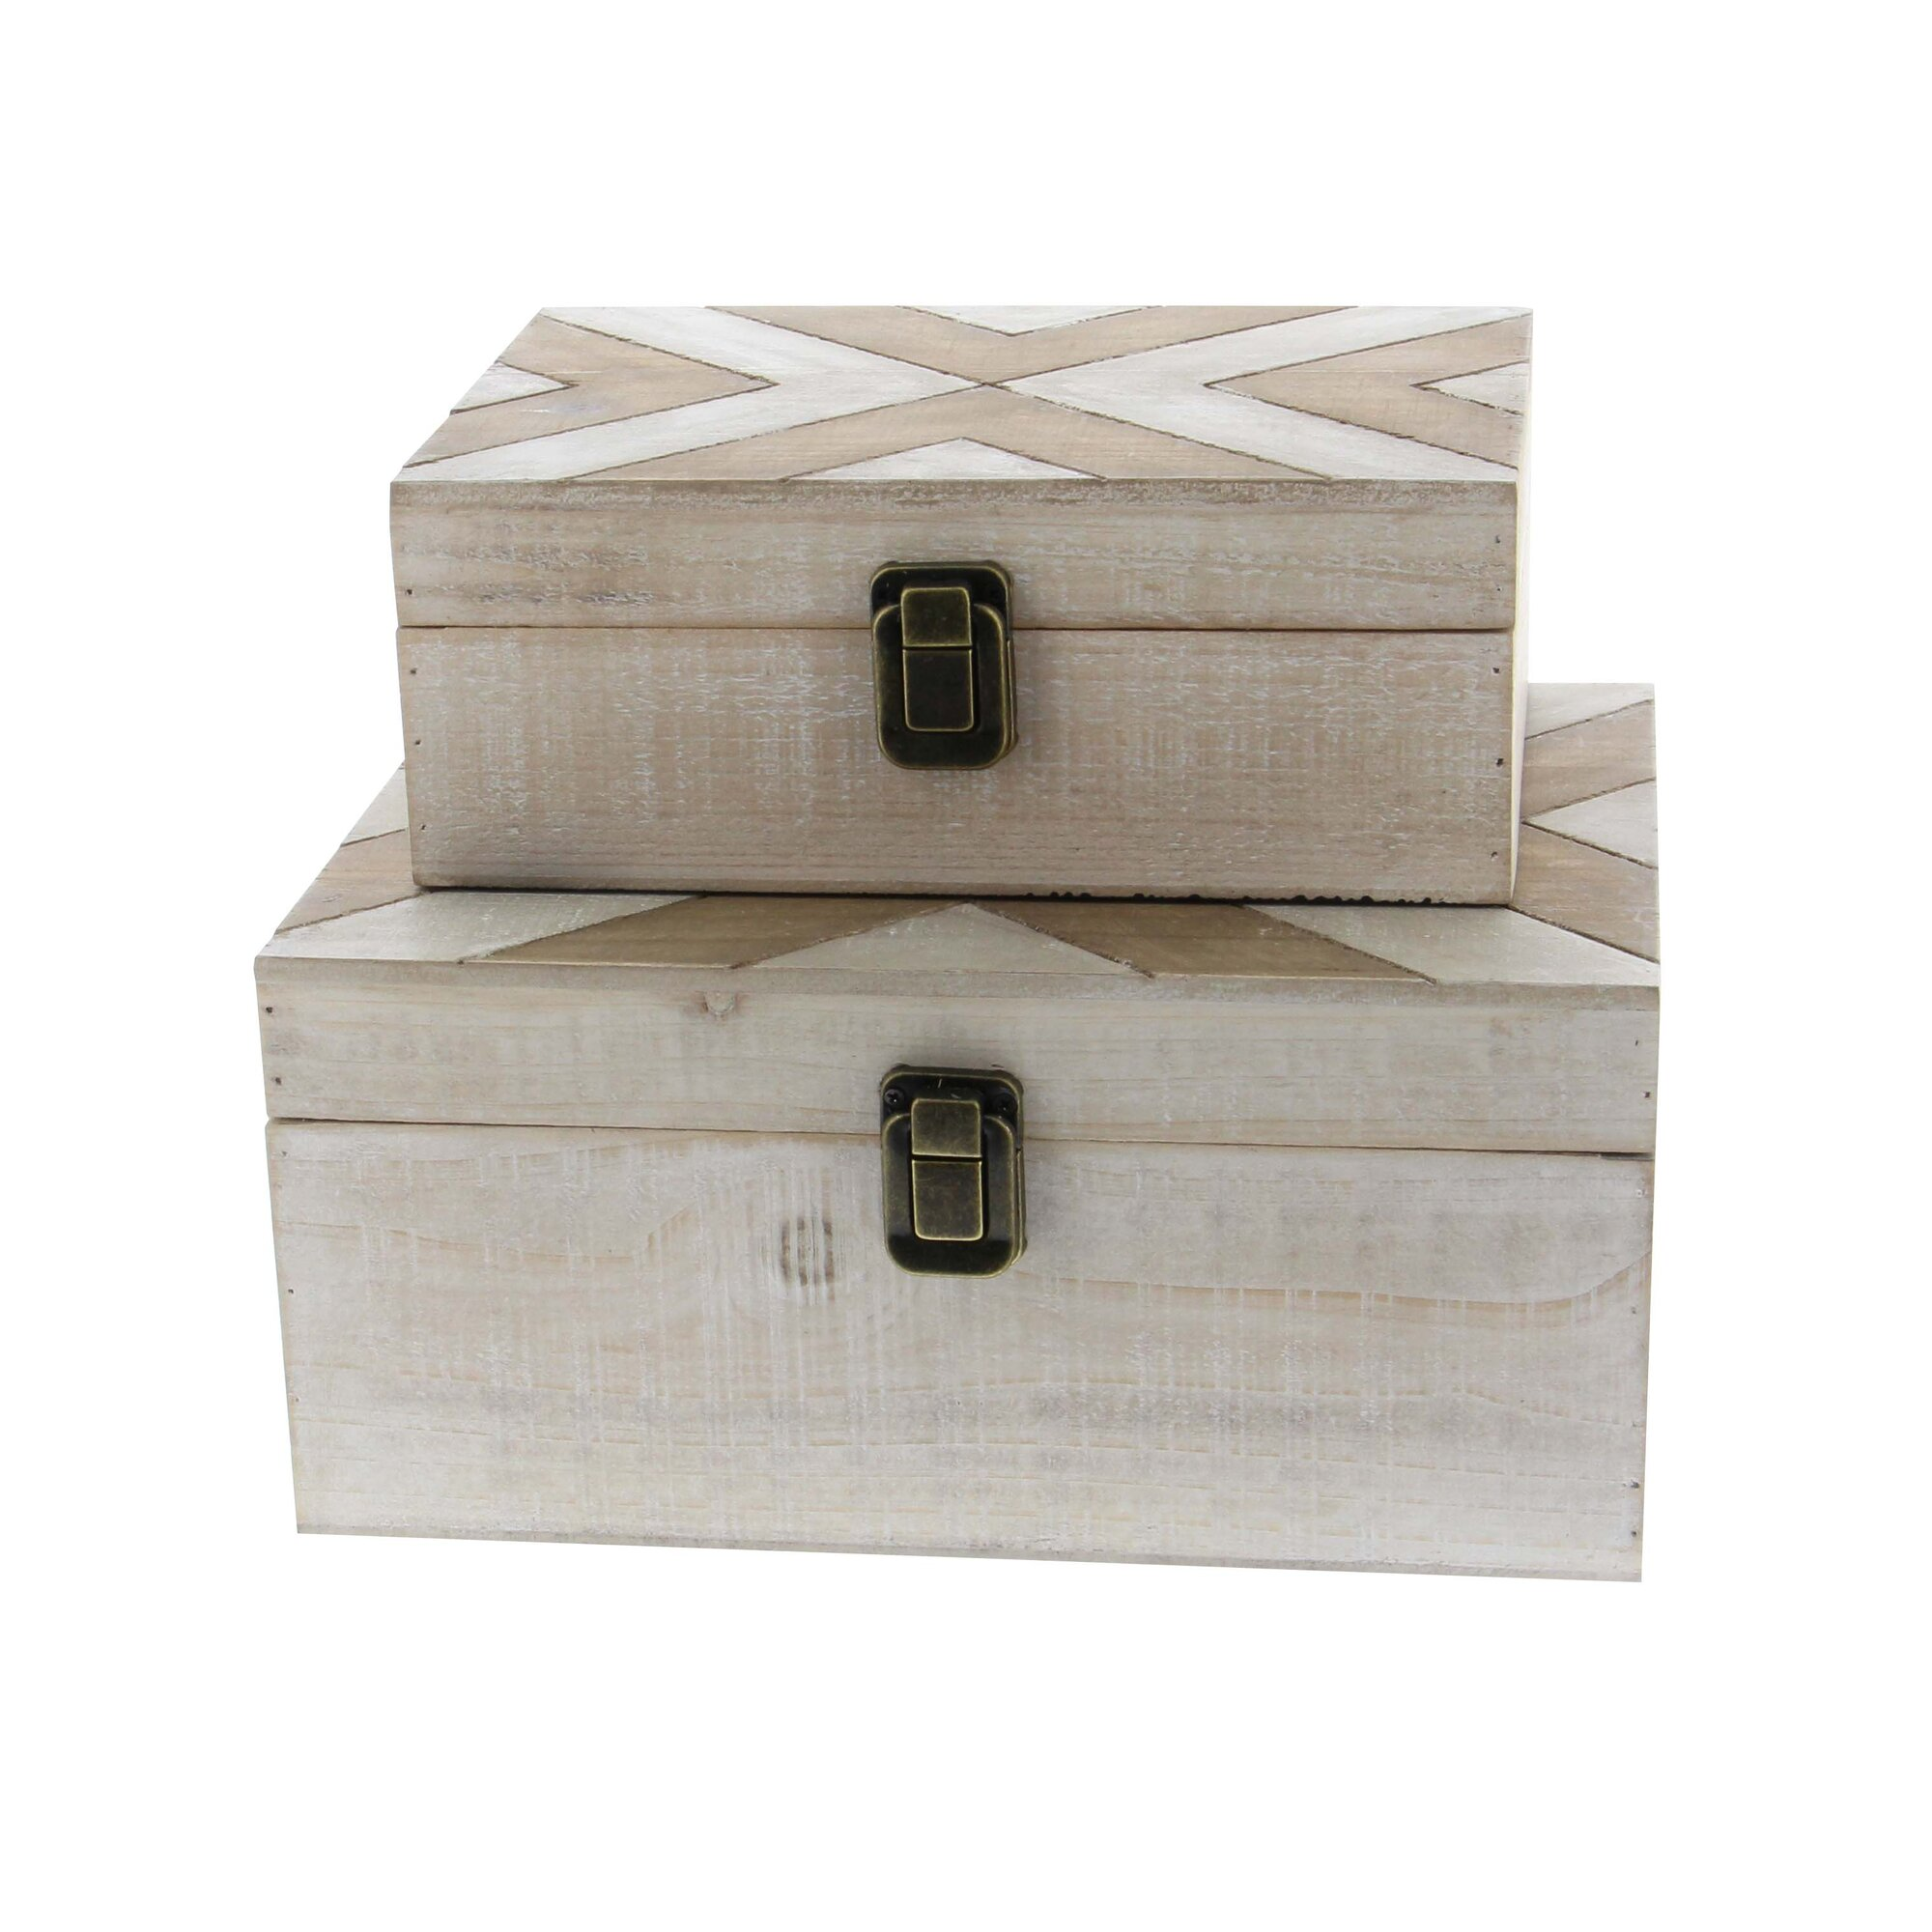 Cole grey 2 piece wood box set for Decor containers coles